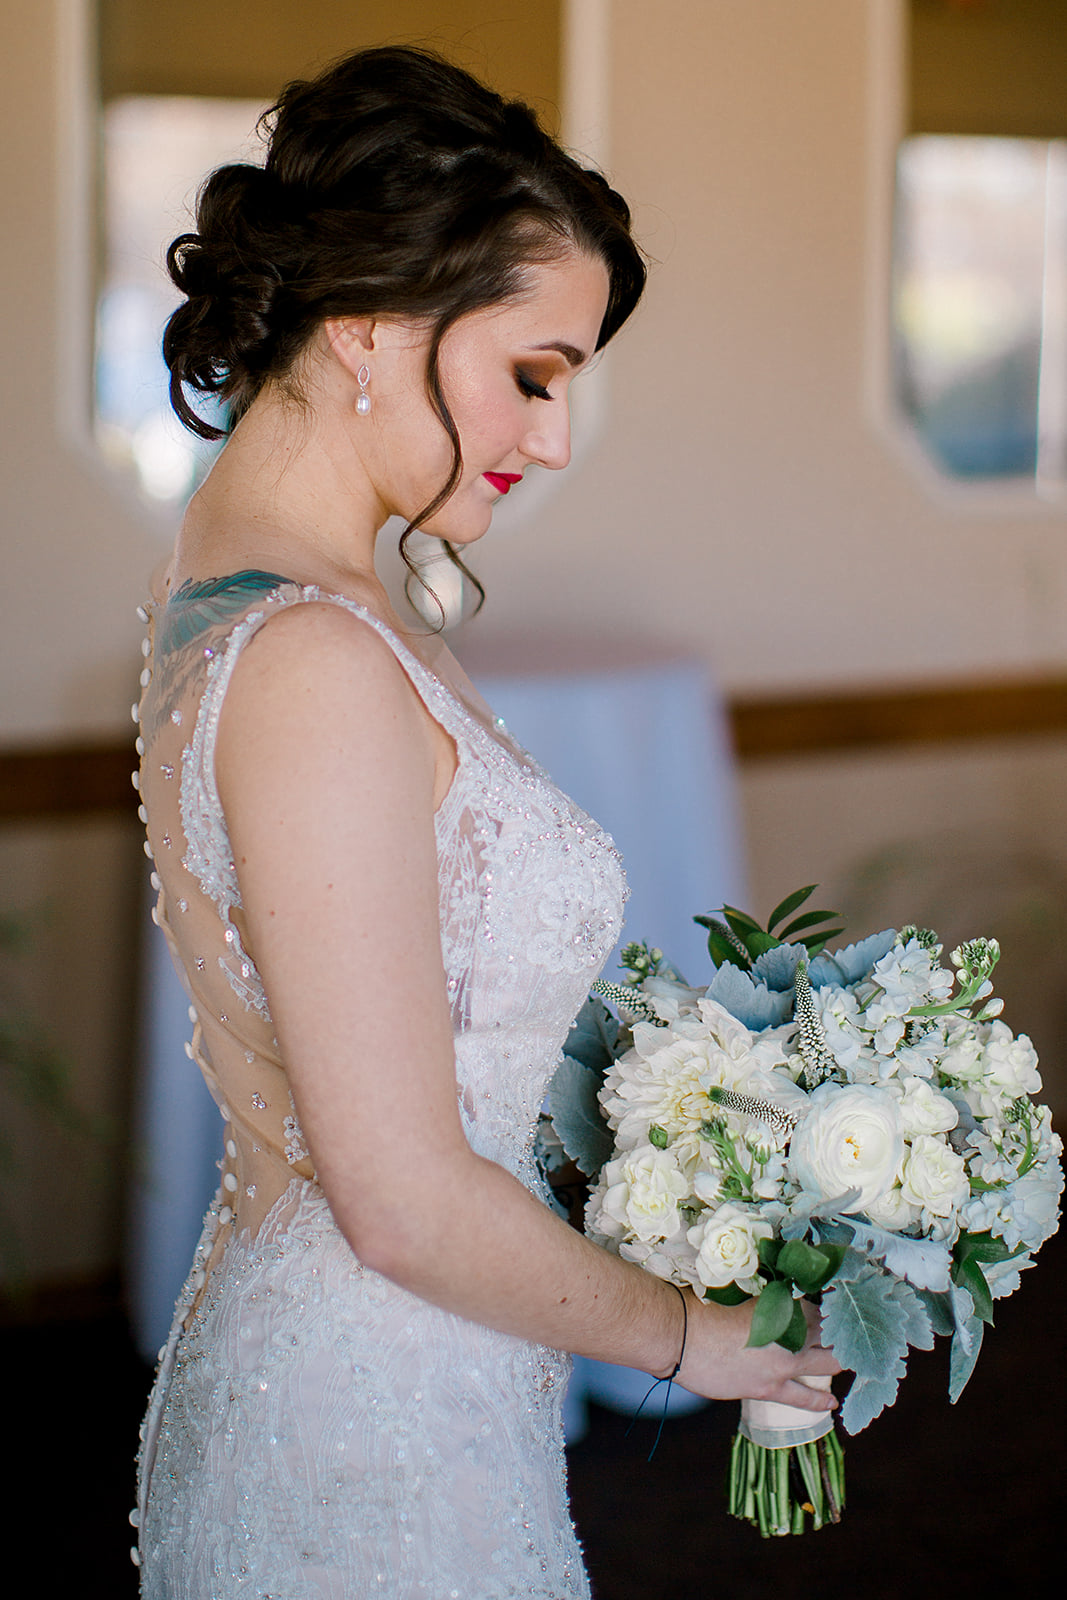 Royal Cliff Eagan Wedding Banquet Hall, dusty miller white bouquet bride with tattoos photo by Rachel Graff Photography